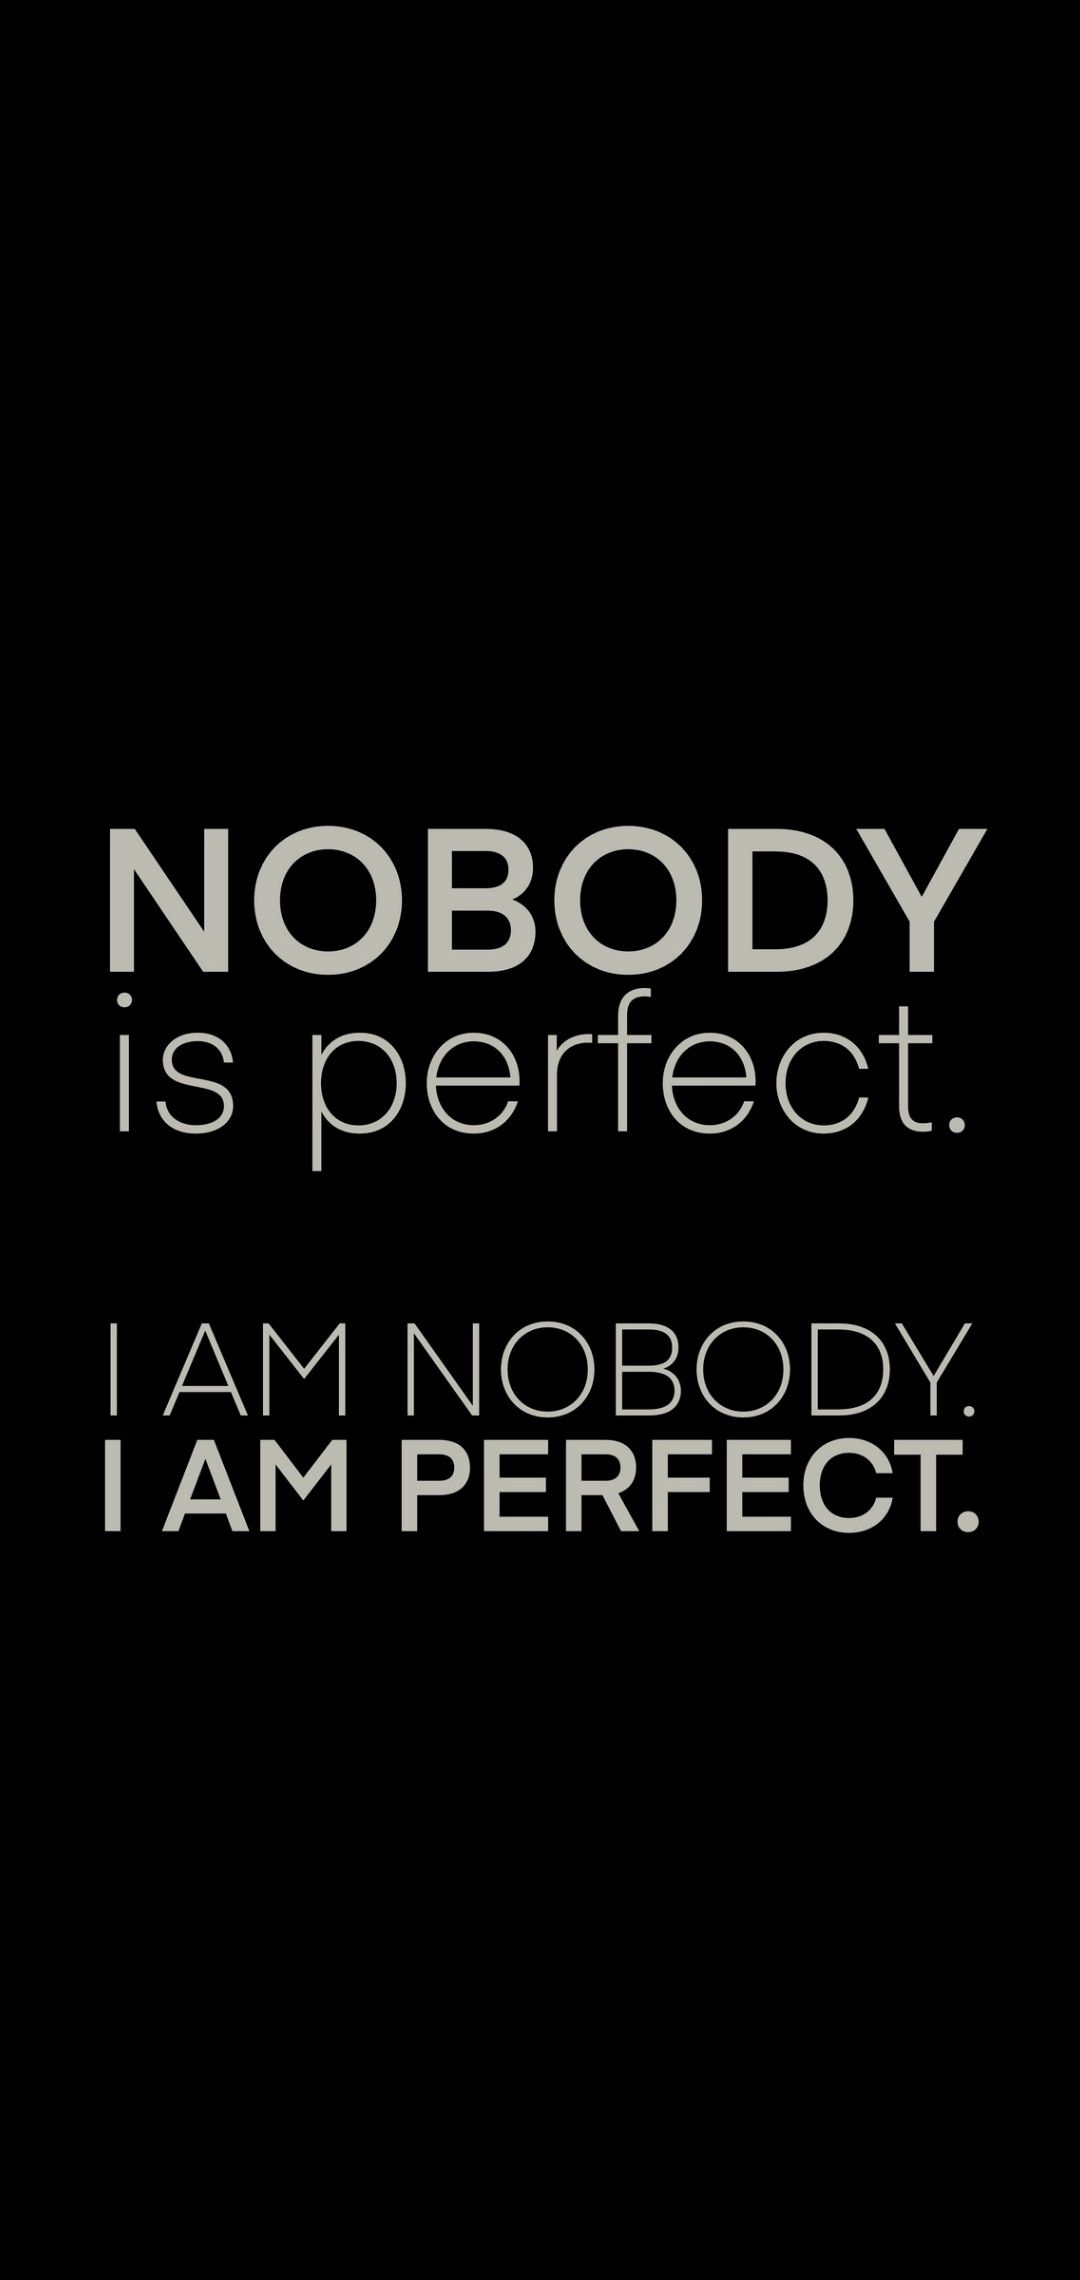 Nobody is perfect. I am nobody i am perfect. | Words